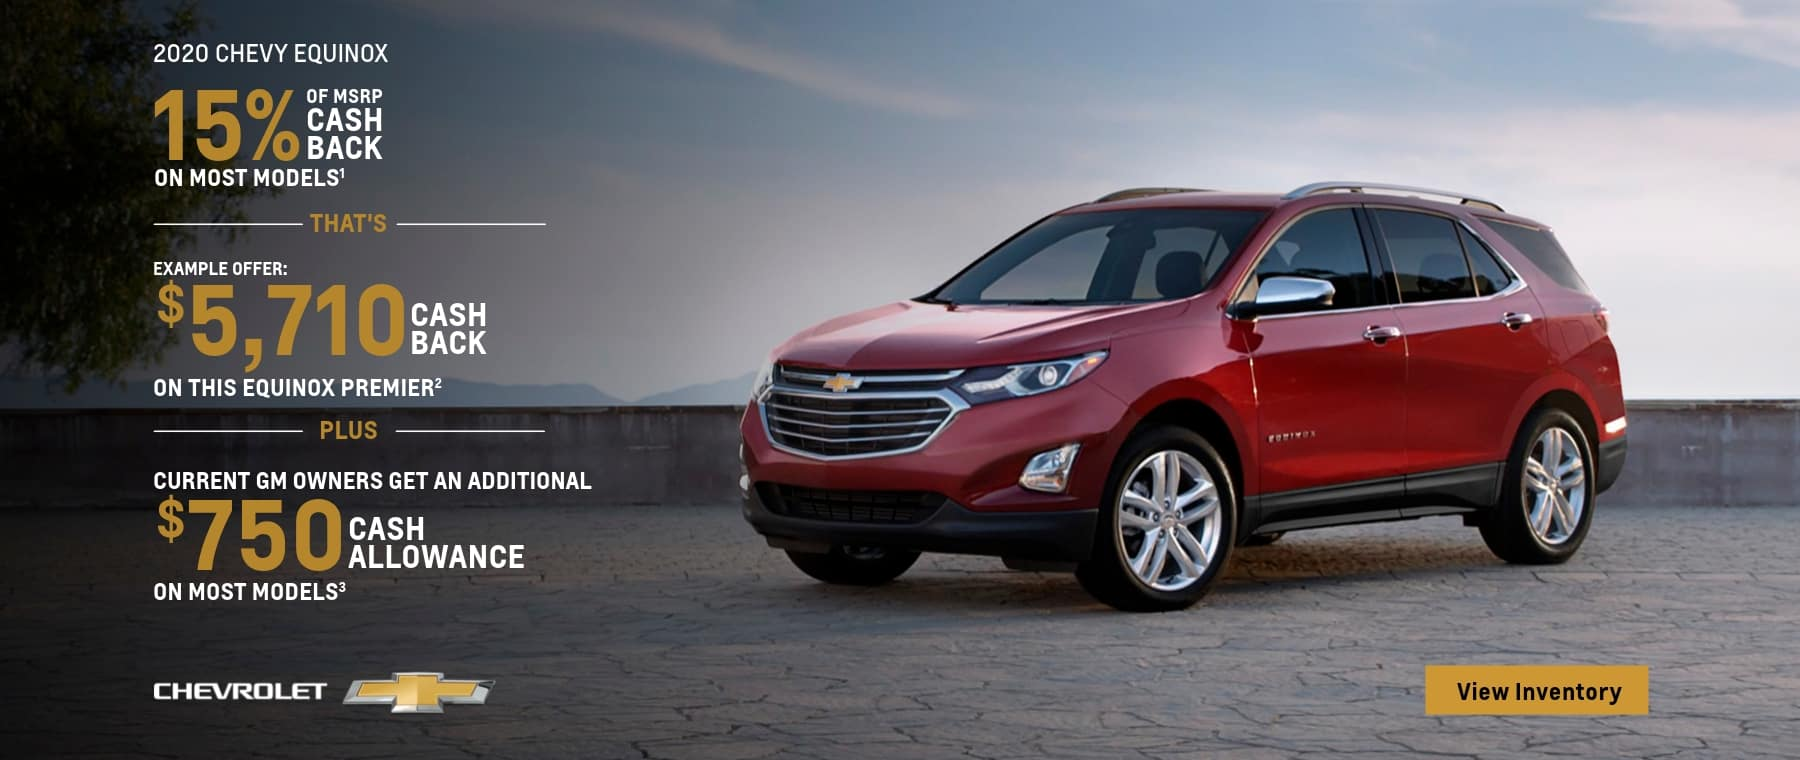 15% Of MSRP Cash Back On Most Models That's Example Offer $5,710 Cash Back on this Equinox Premier Plus Current GM Owners get an additional $750 Cash Allowance on most models